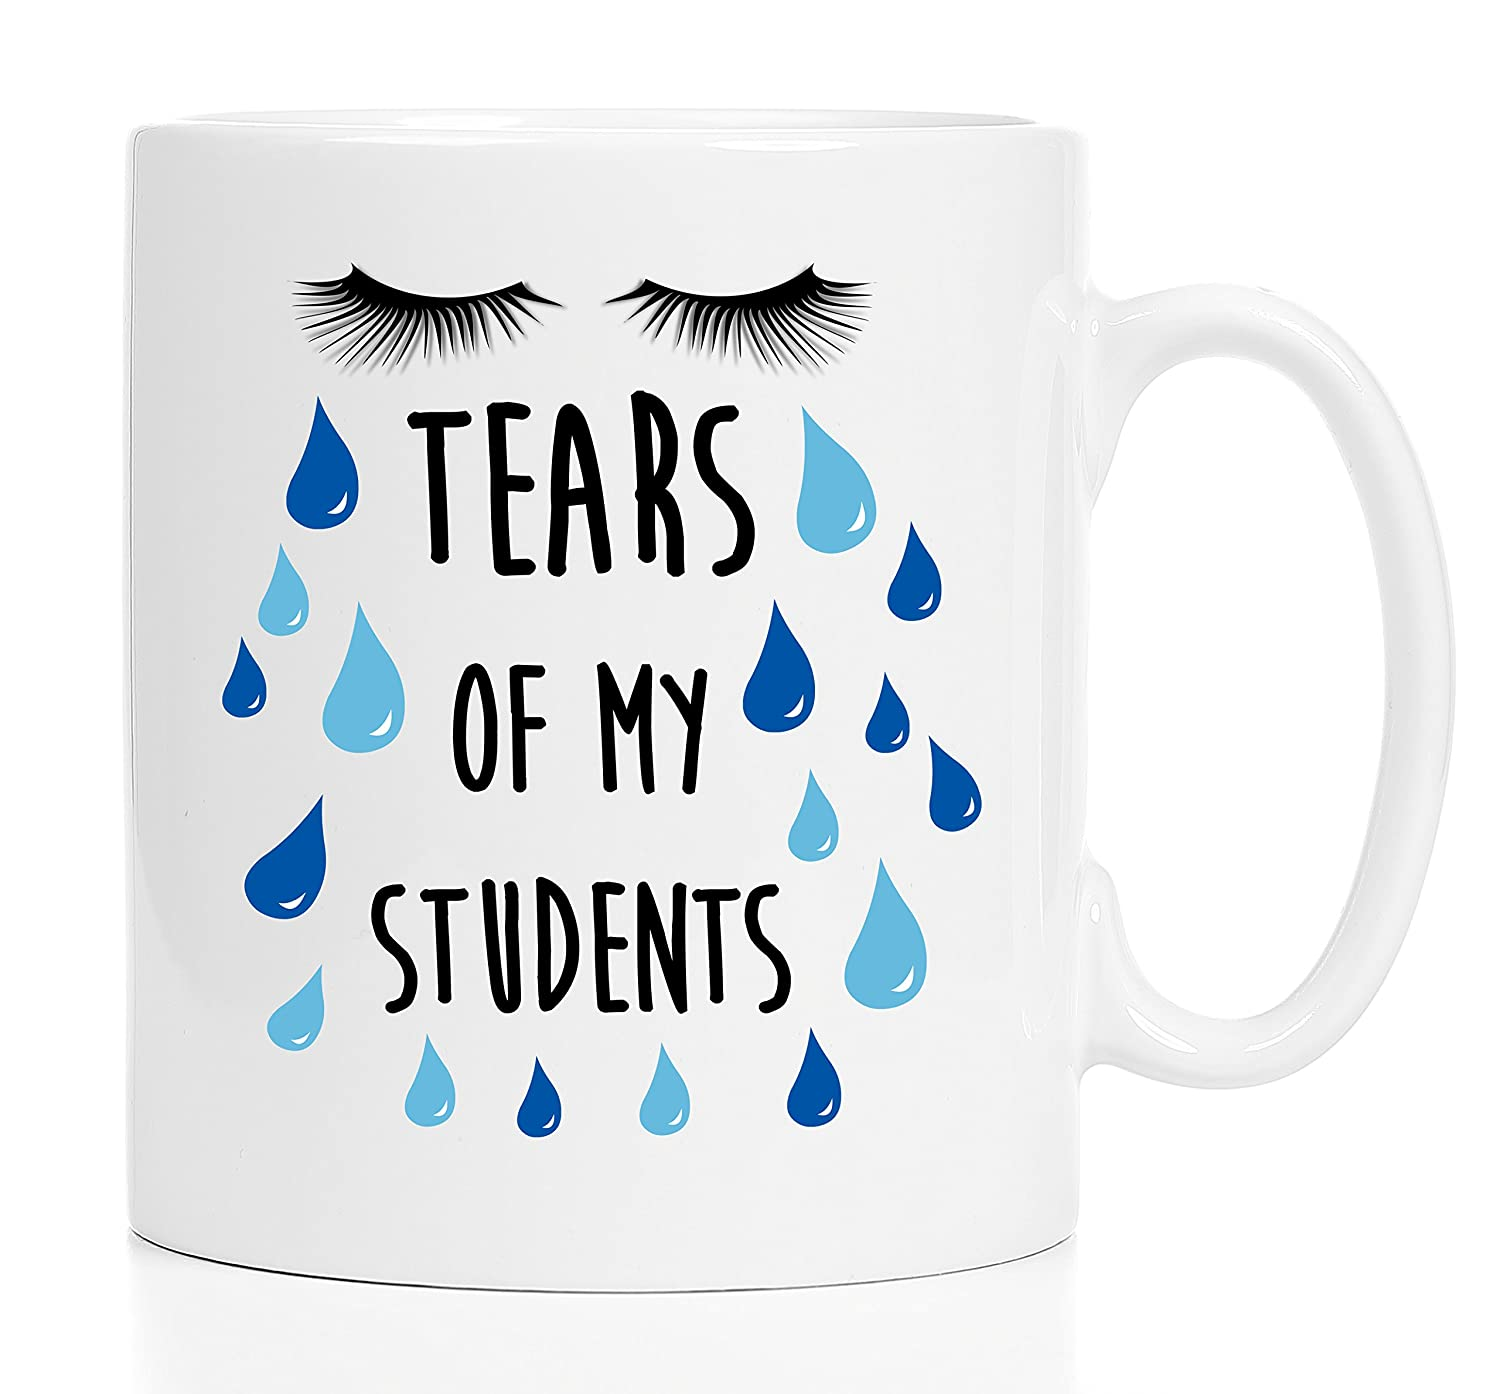 7f3a4c271ec Tears of My Students - 11 oz mug -TEACHER Mug - Professor Mug - High School Teacher  Gift - College Professor Gift - Funny Gift For Teacher - Funny Gift For ...